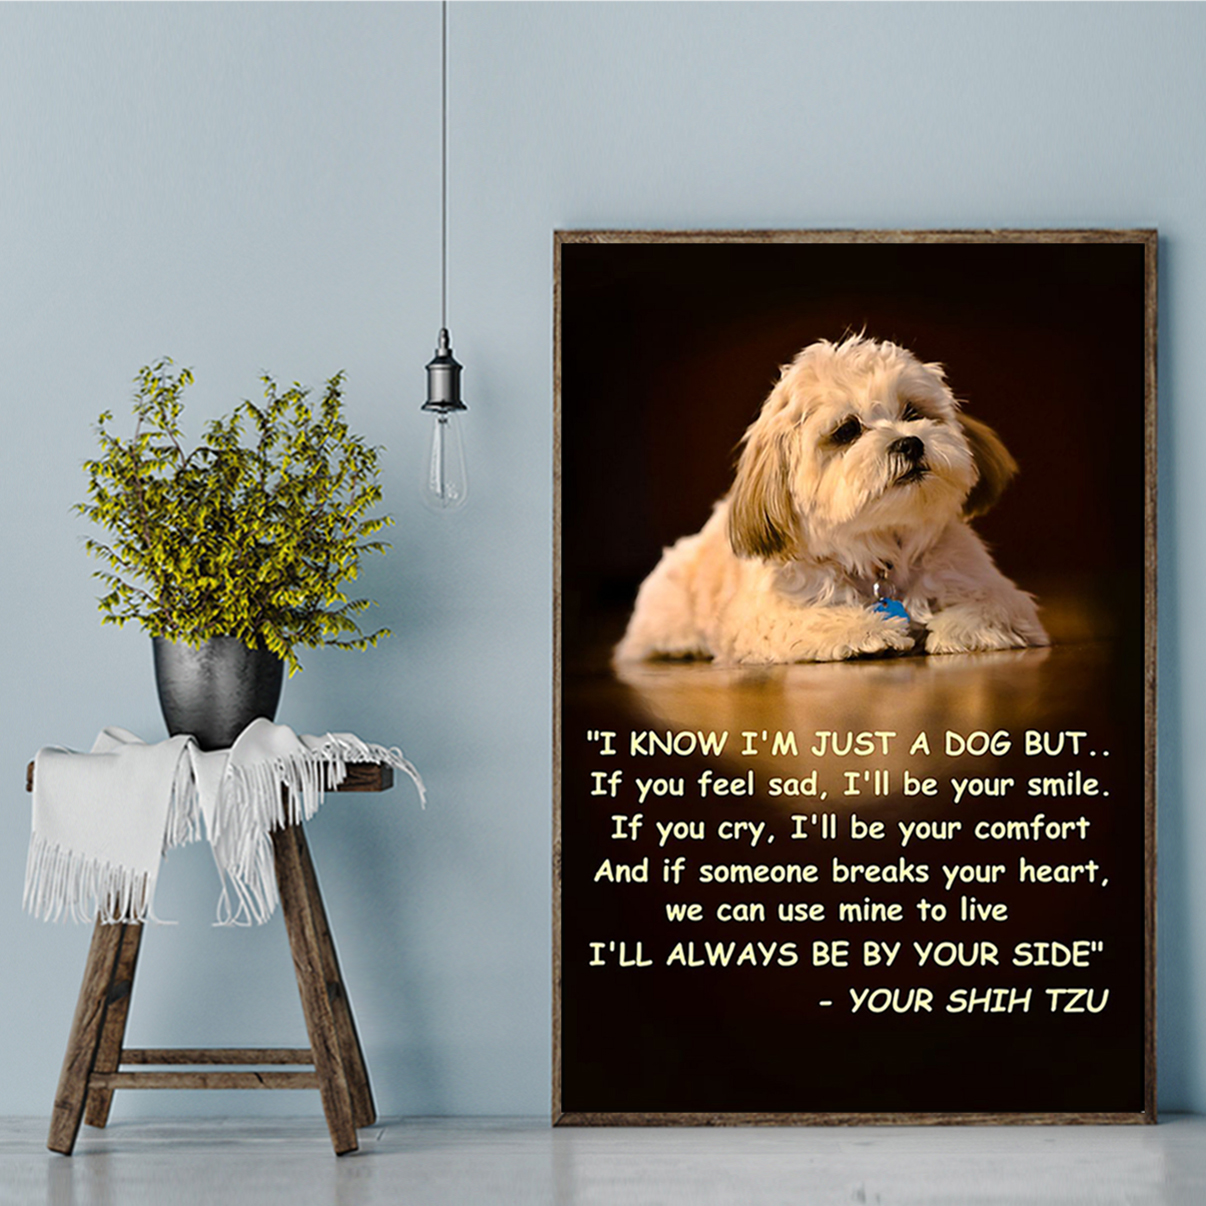 Shih tzu I know I'm just a dog but poster A2